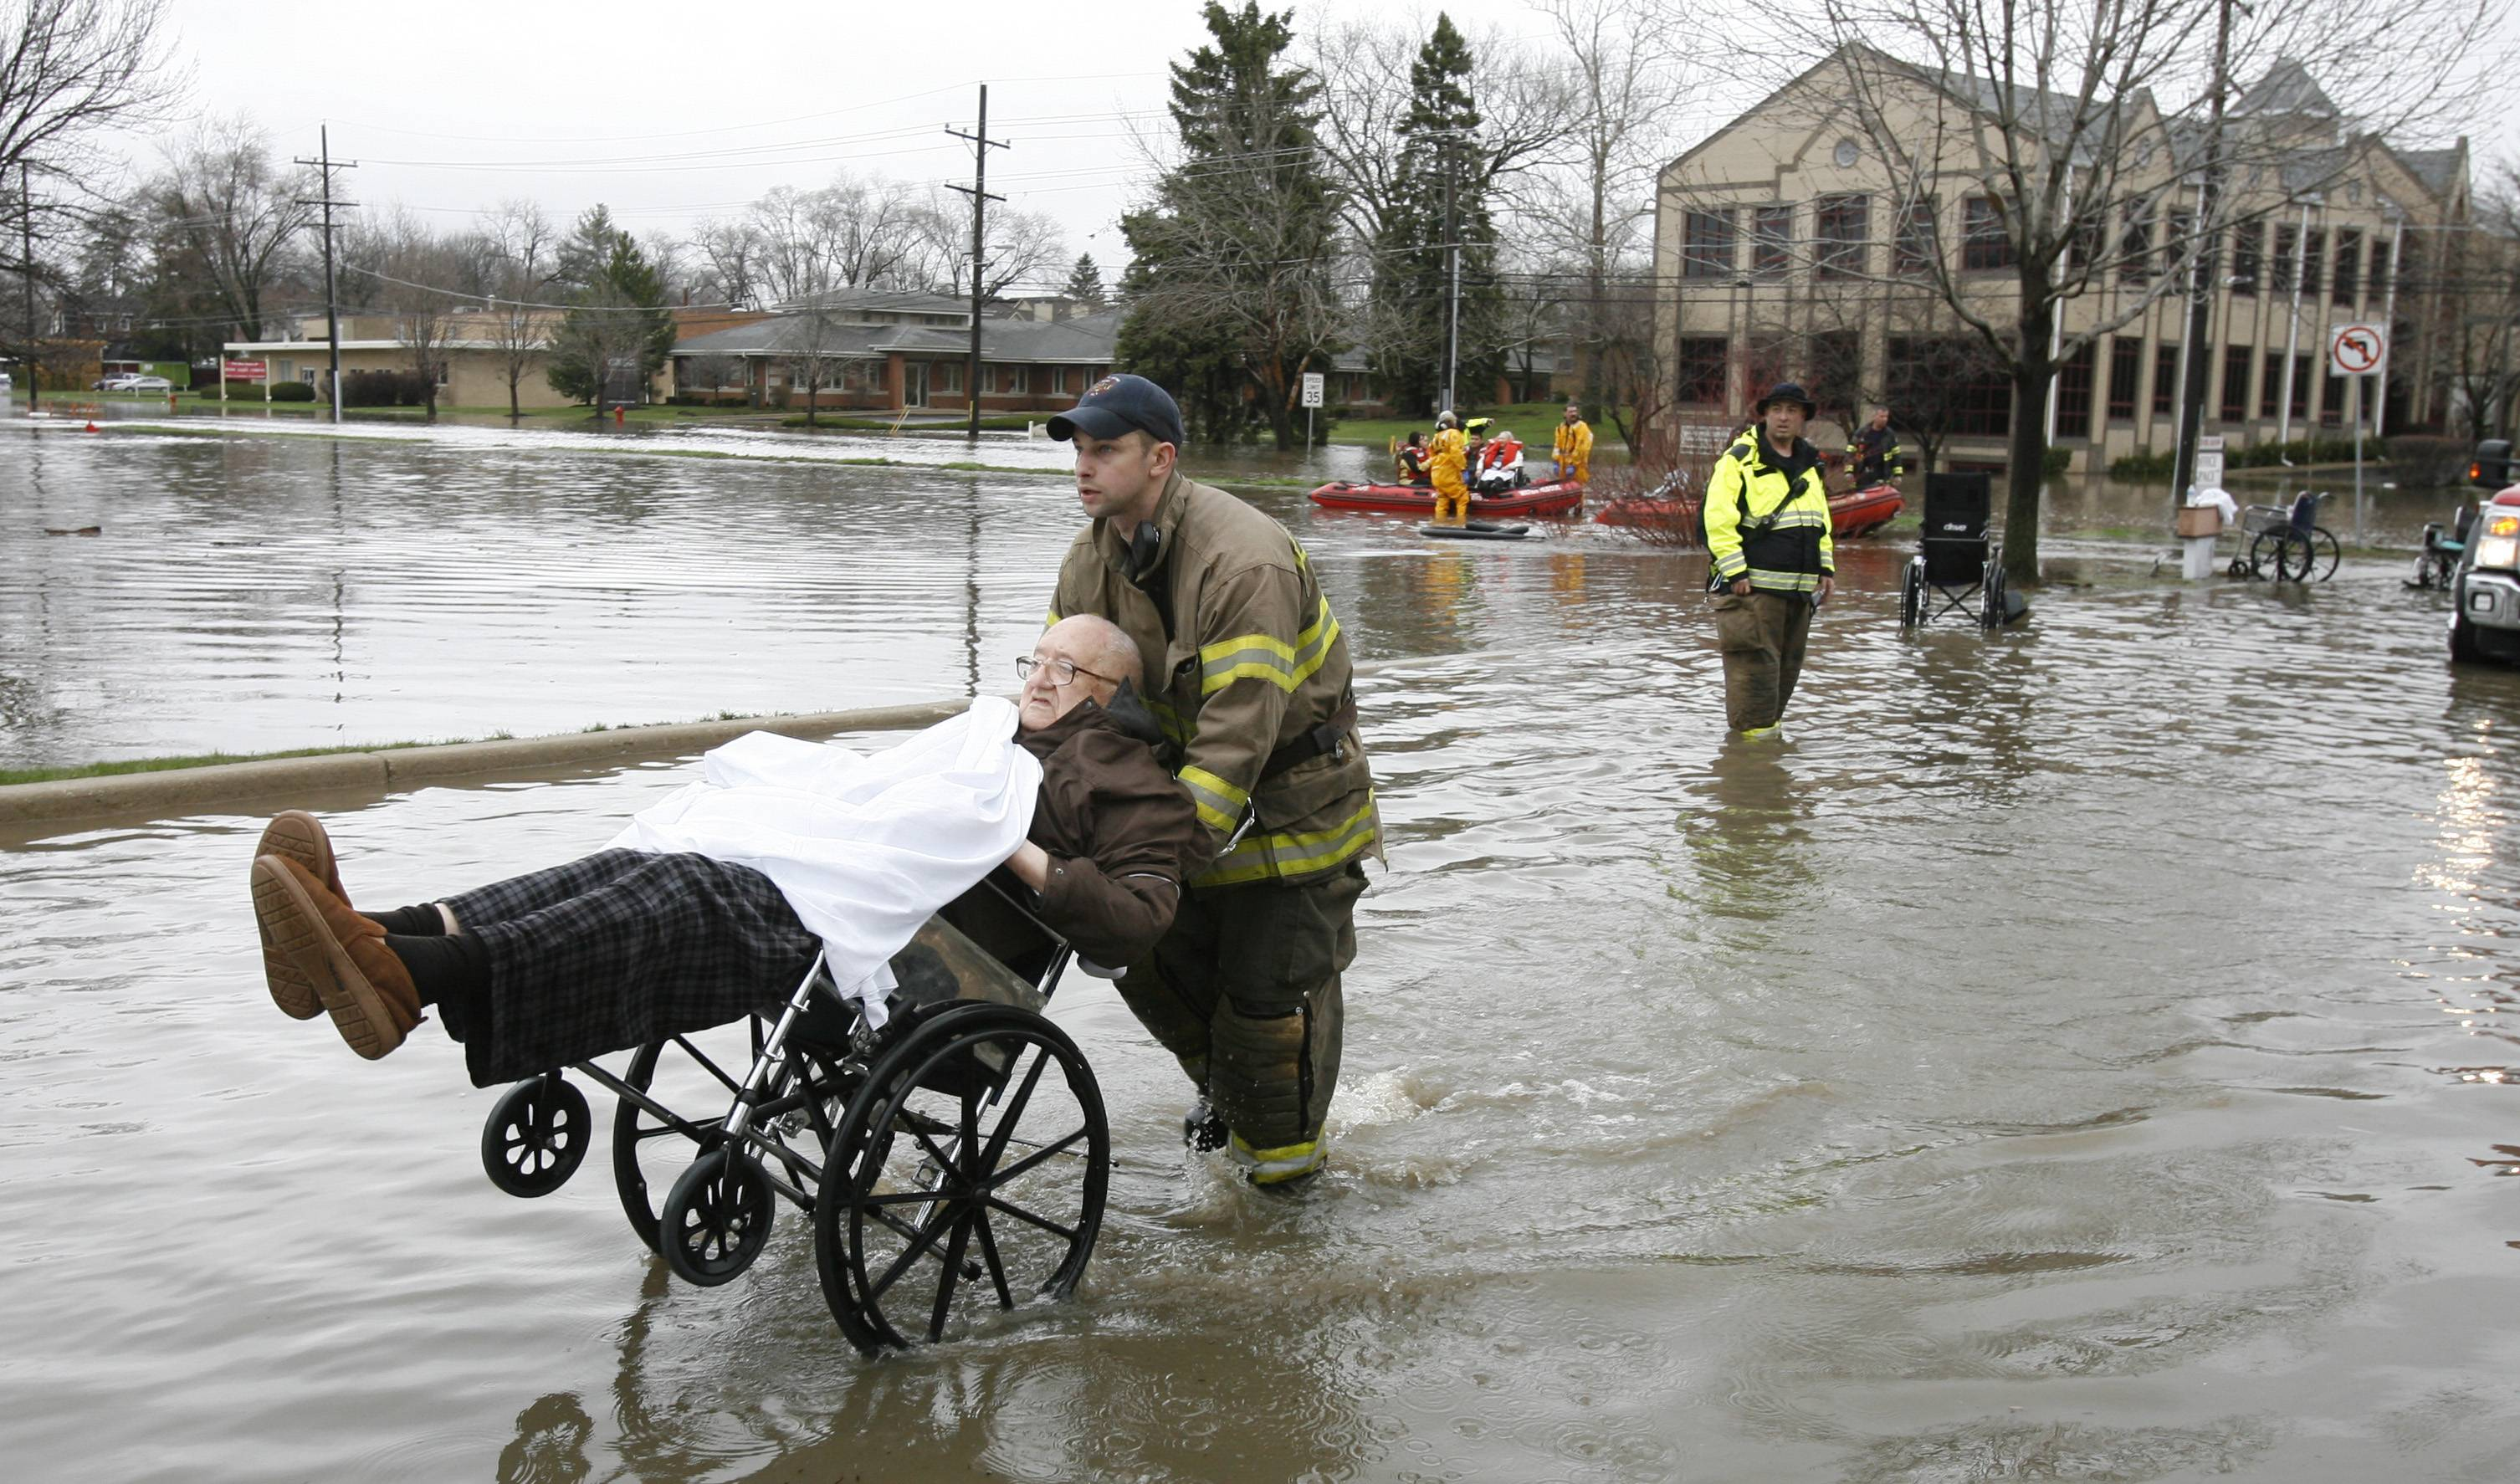 Firefighters help evacuate residents of Snow Valley Nursing and Rehabilitation Center in Lisle last April 18 after the building on Route 53 flooded.